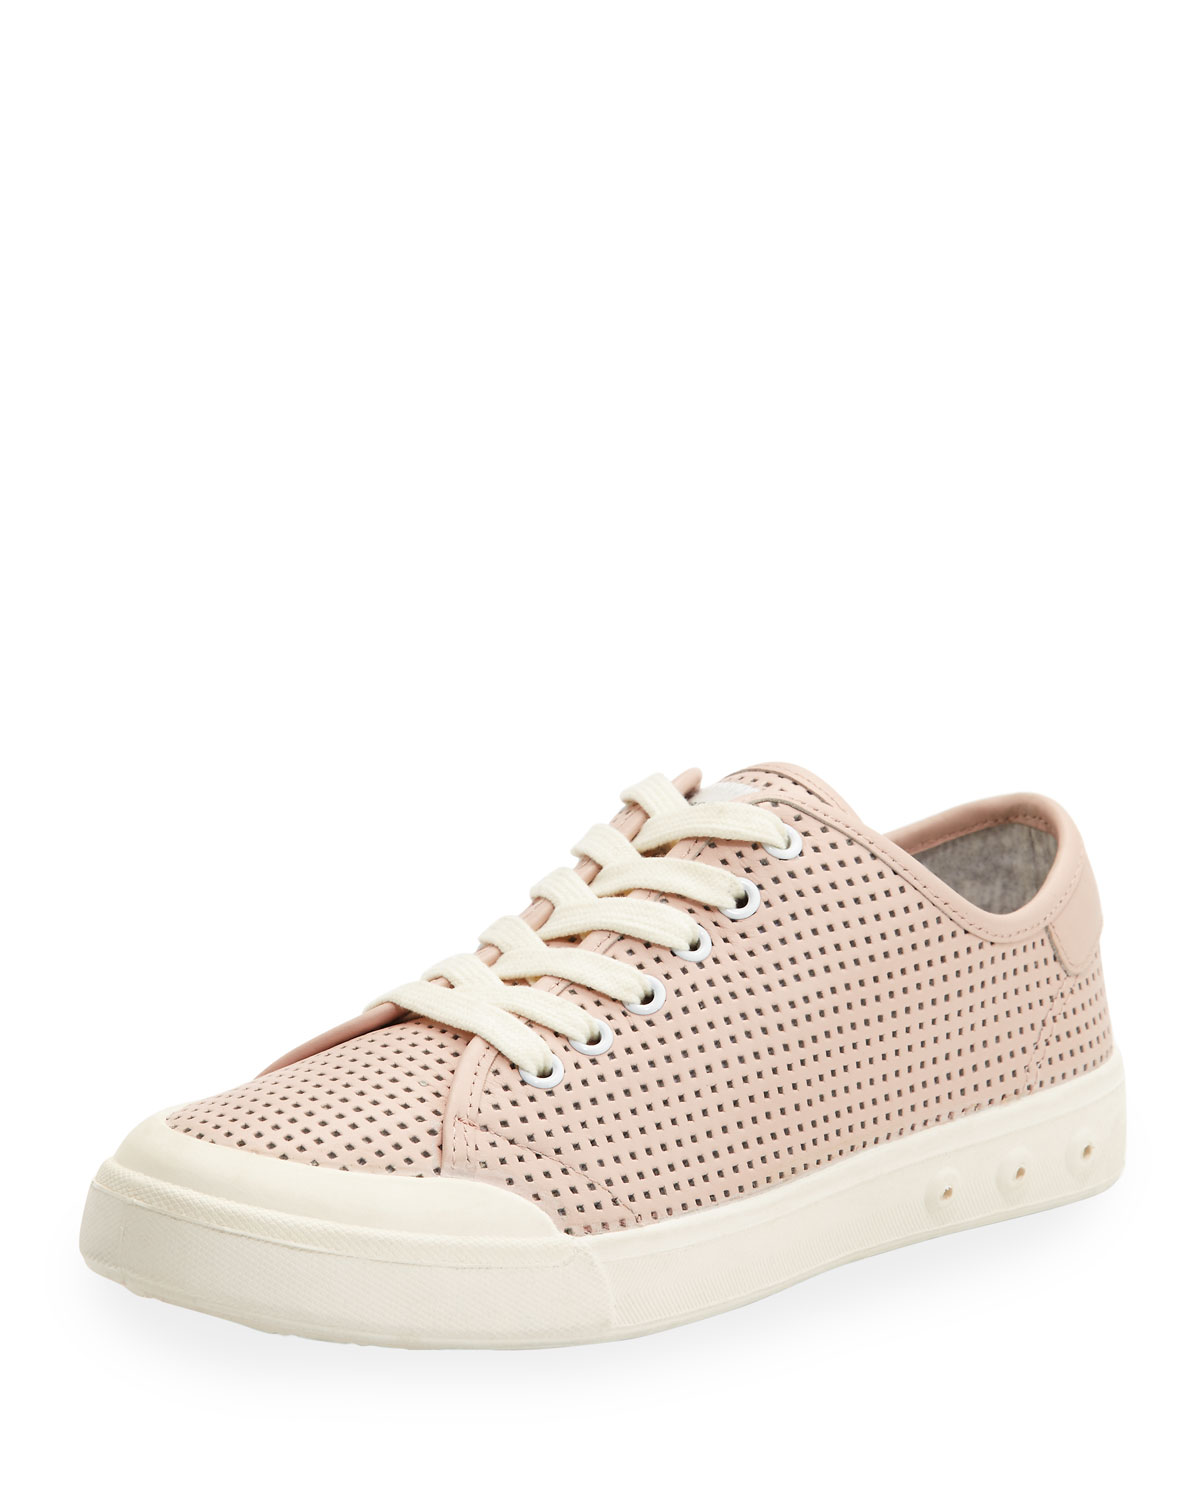 Rag & Bone Perforated Low-Top Sneakers free shipping explore clearance latest collections original sale online outlet genuine store for sale RV1Yw1